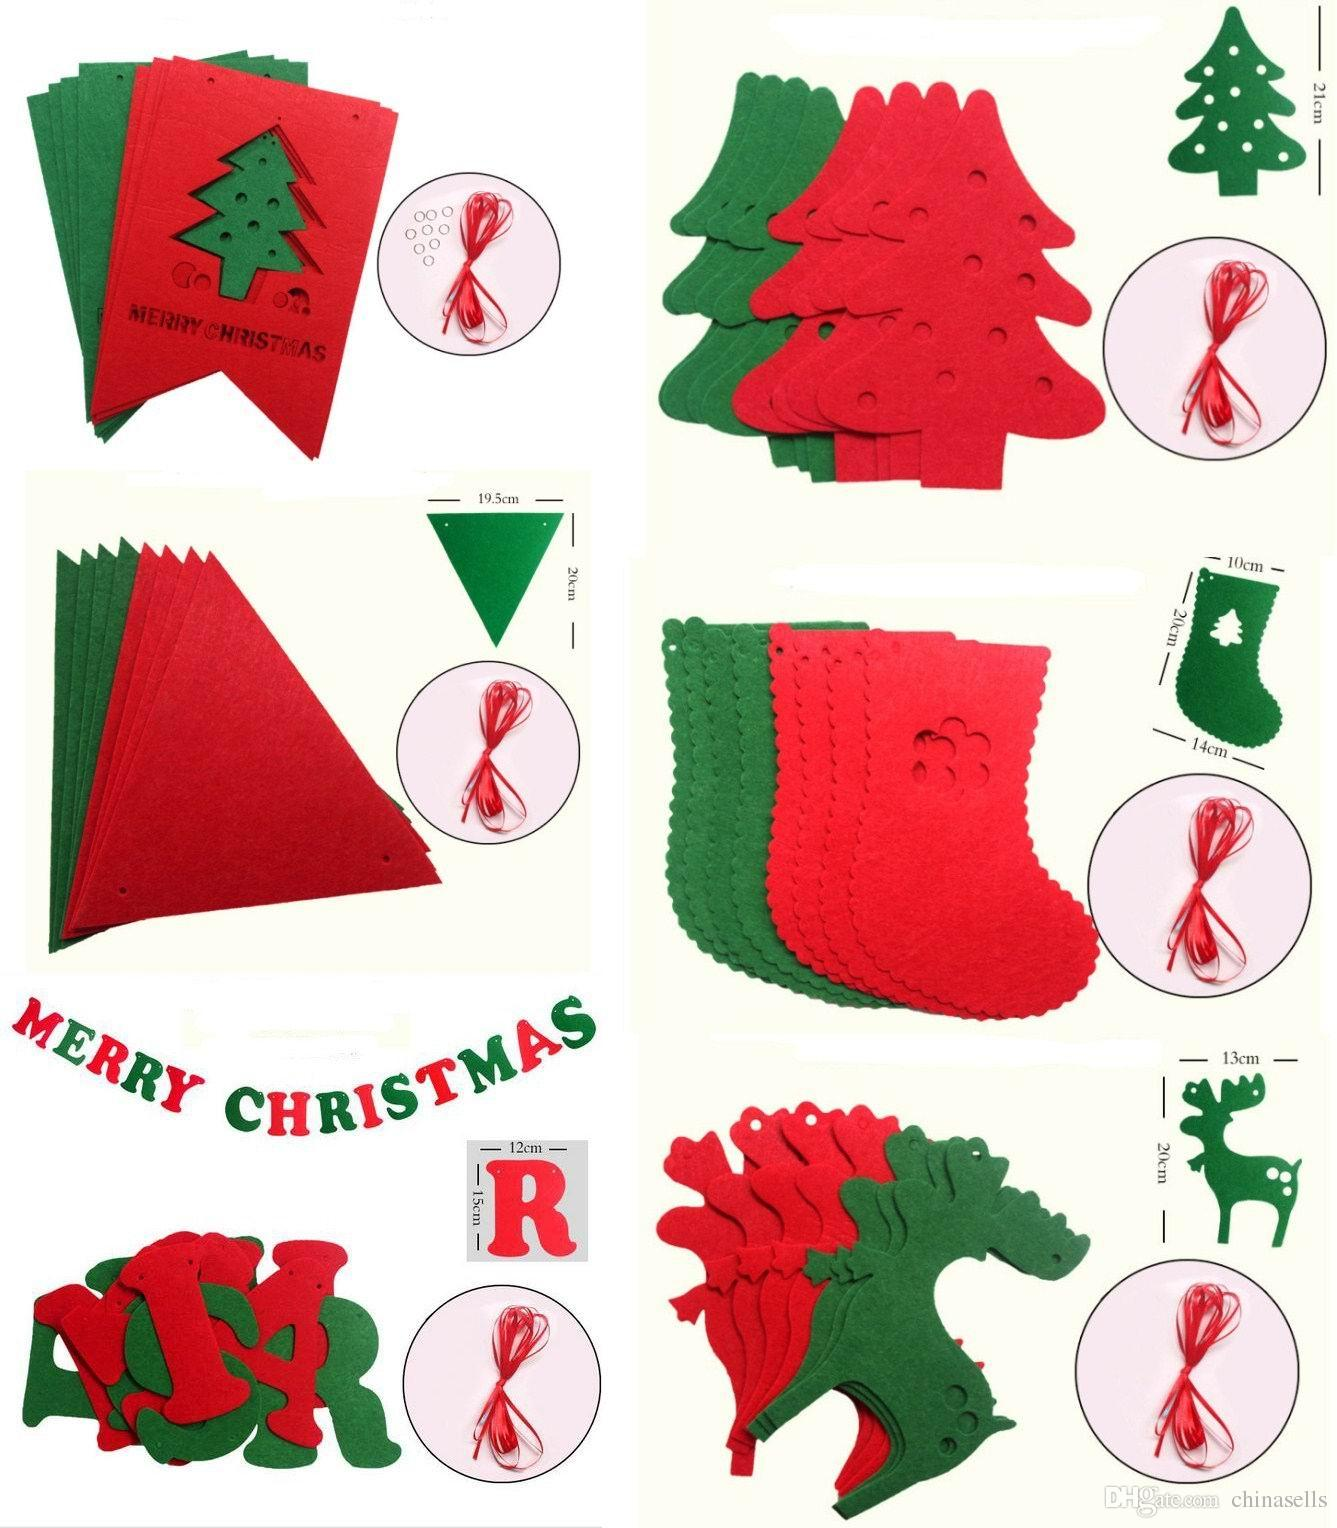 Xmas tree Ornaments hang beer sock snowman Banners window Market mall Christmas Party DIY Decorations 3M Pull flowers